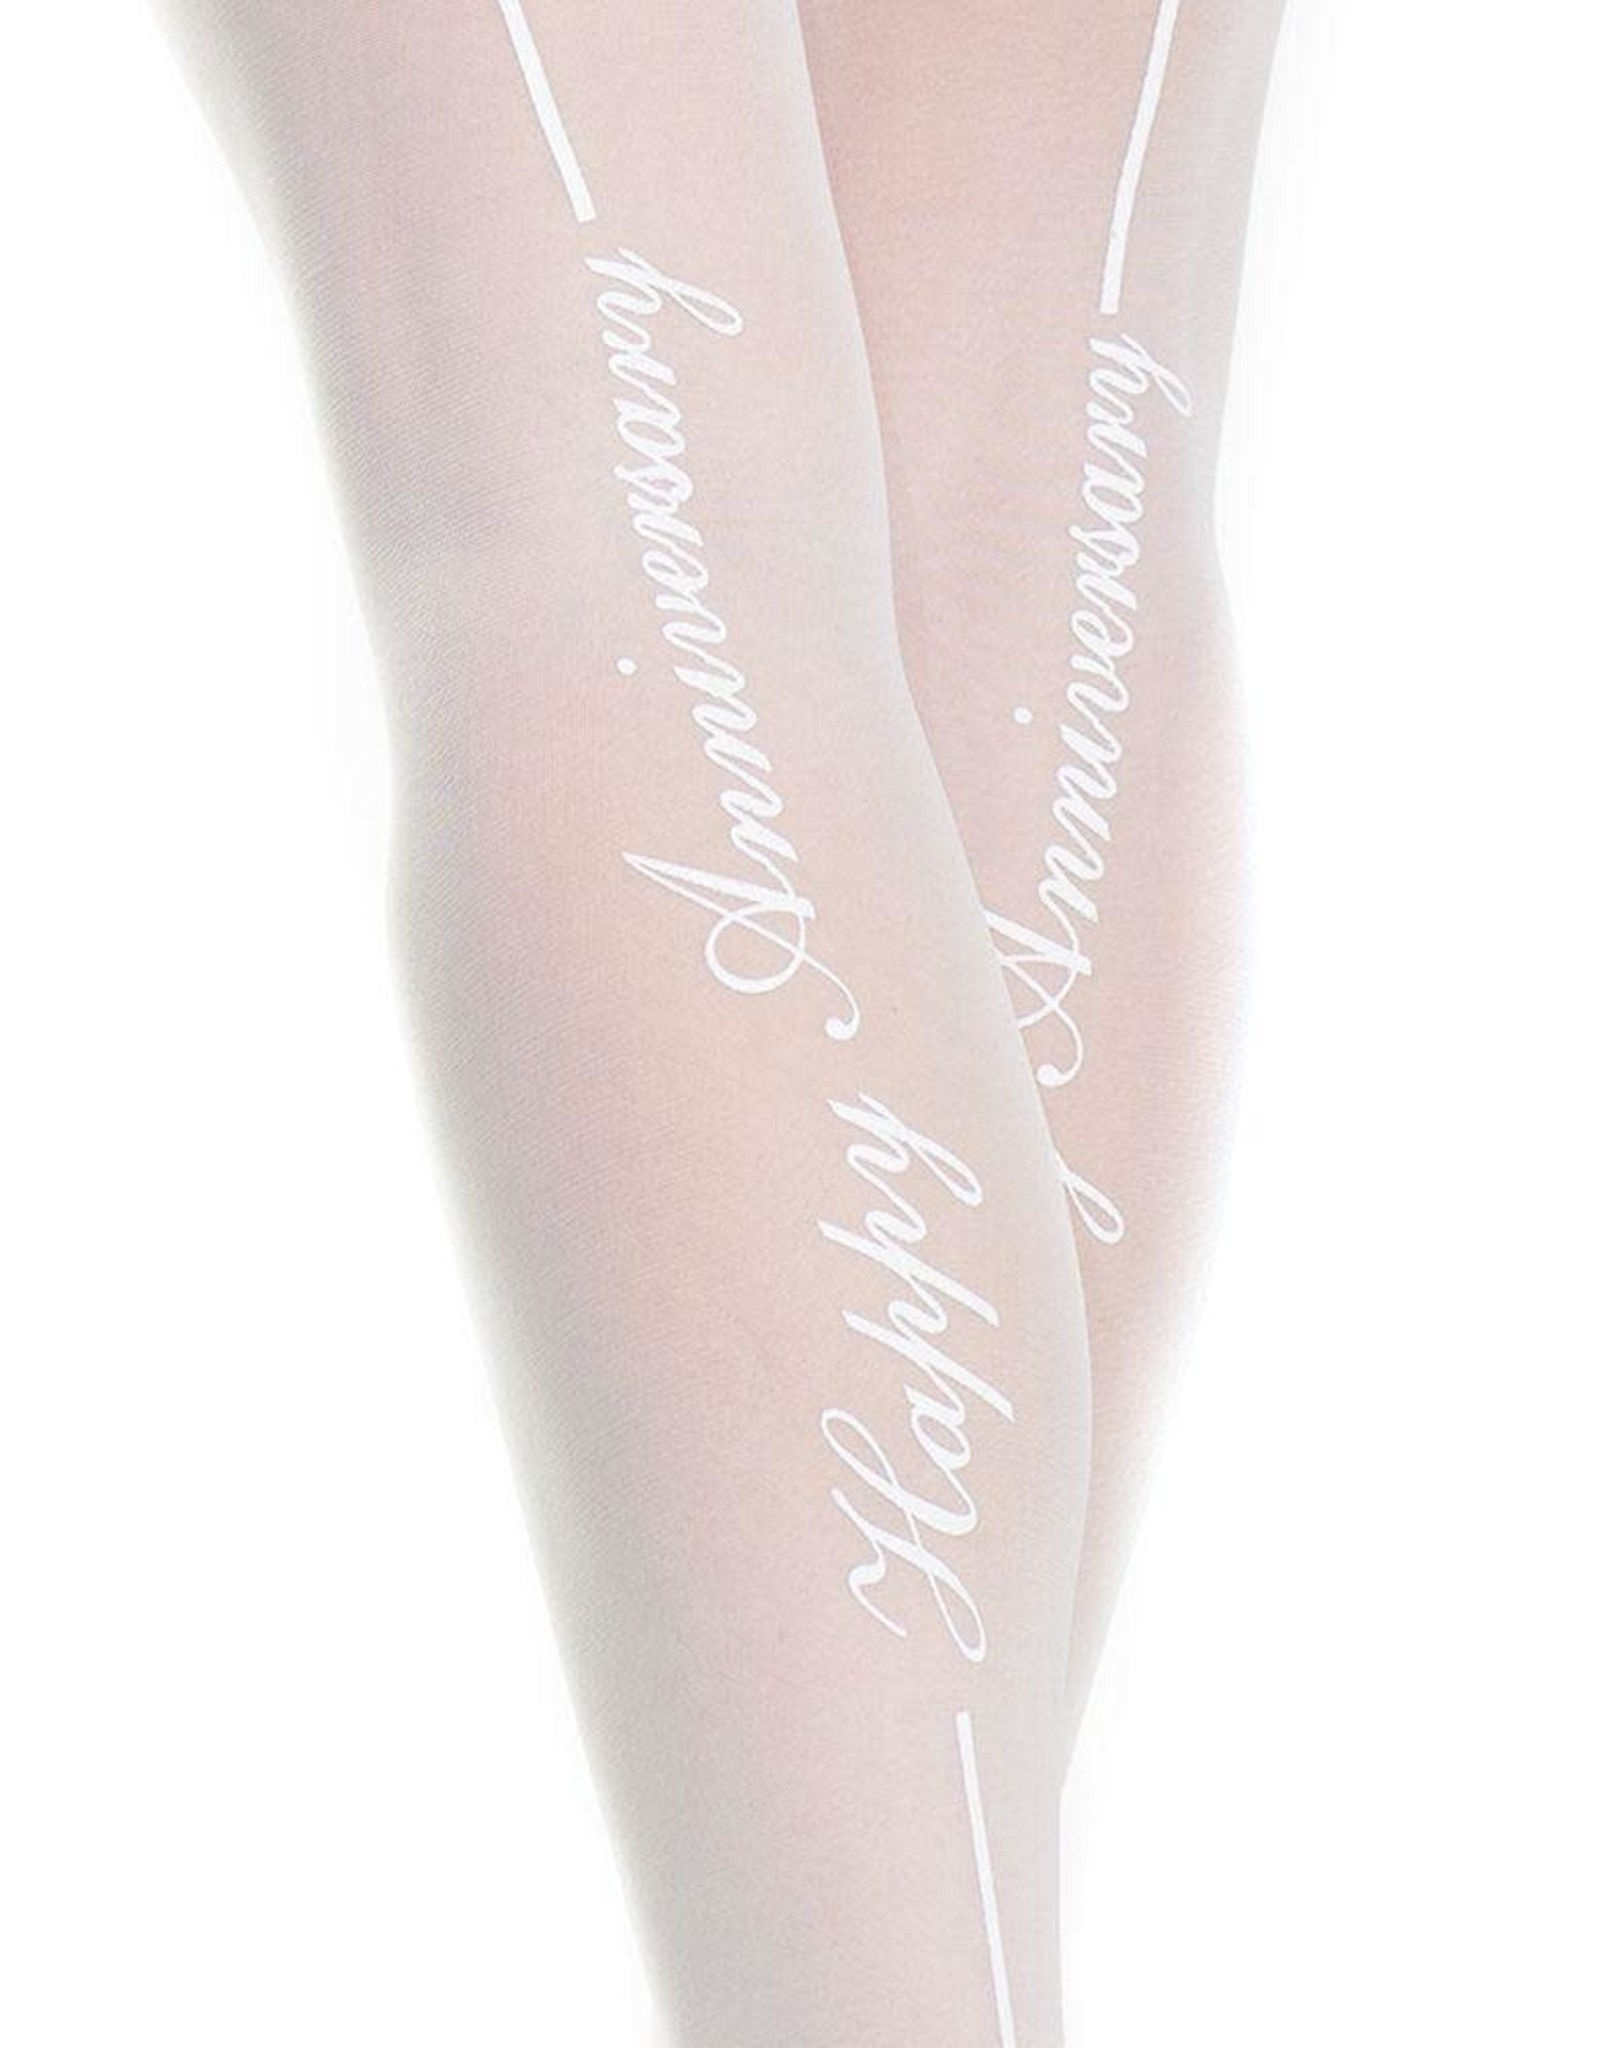 Coquette Happy Anniversary! White Thigh Highs in OS/XL